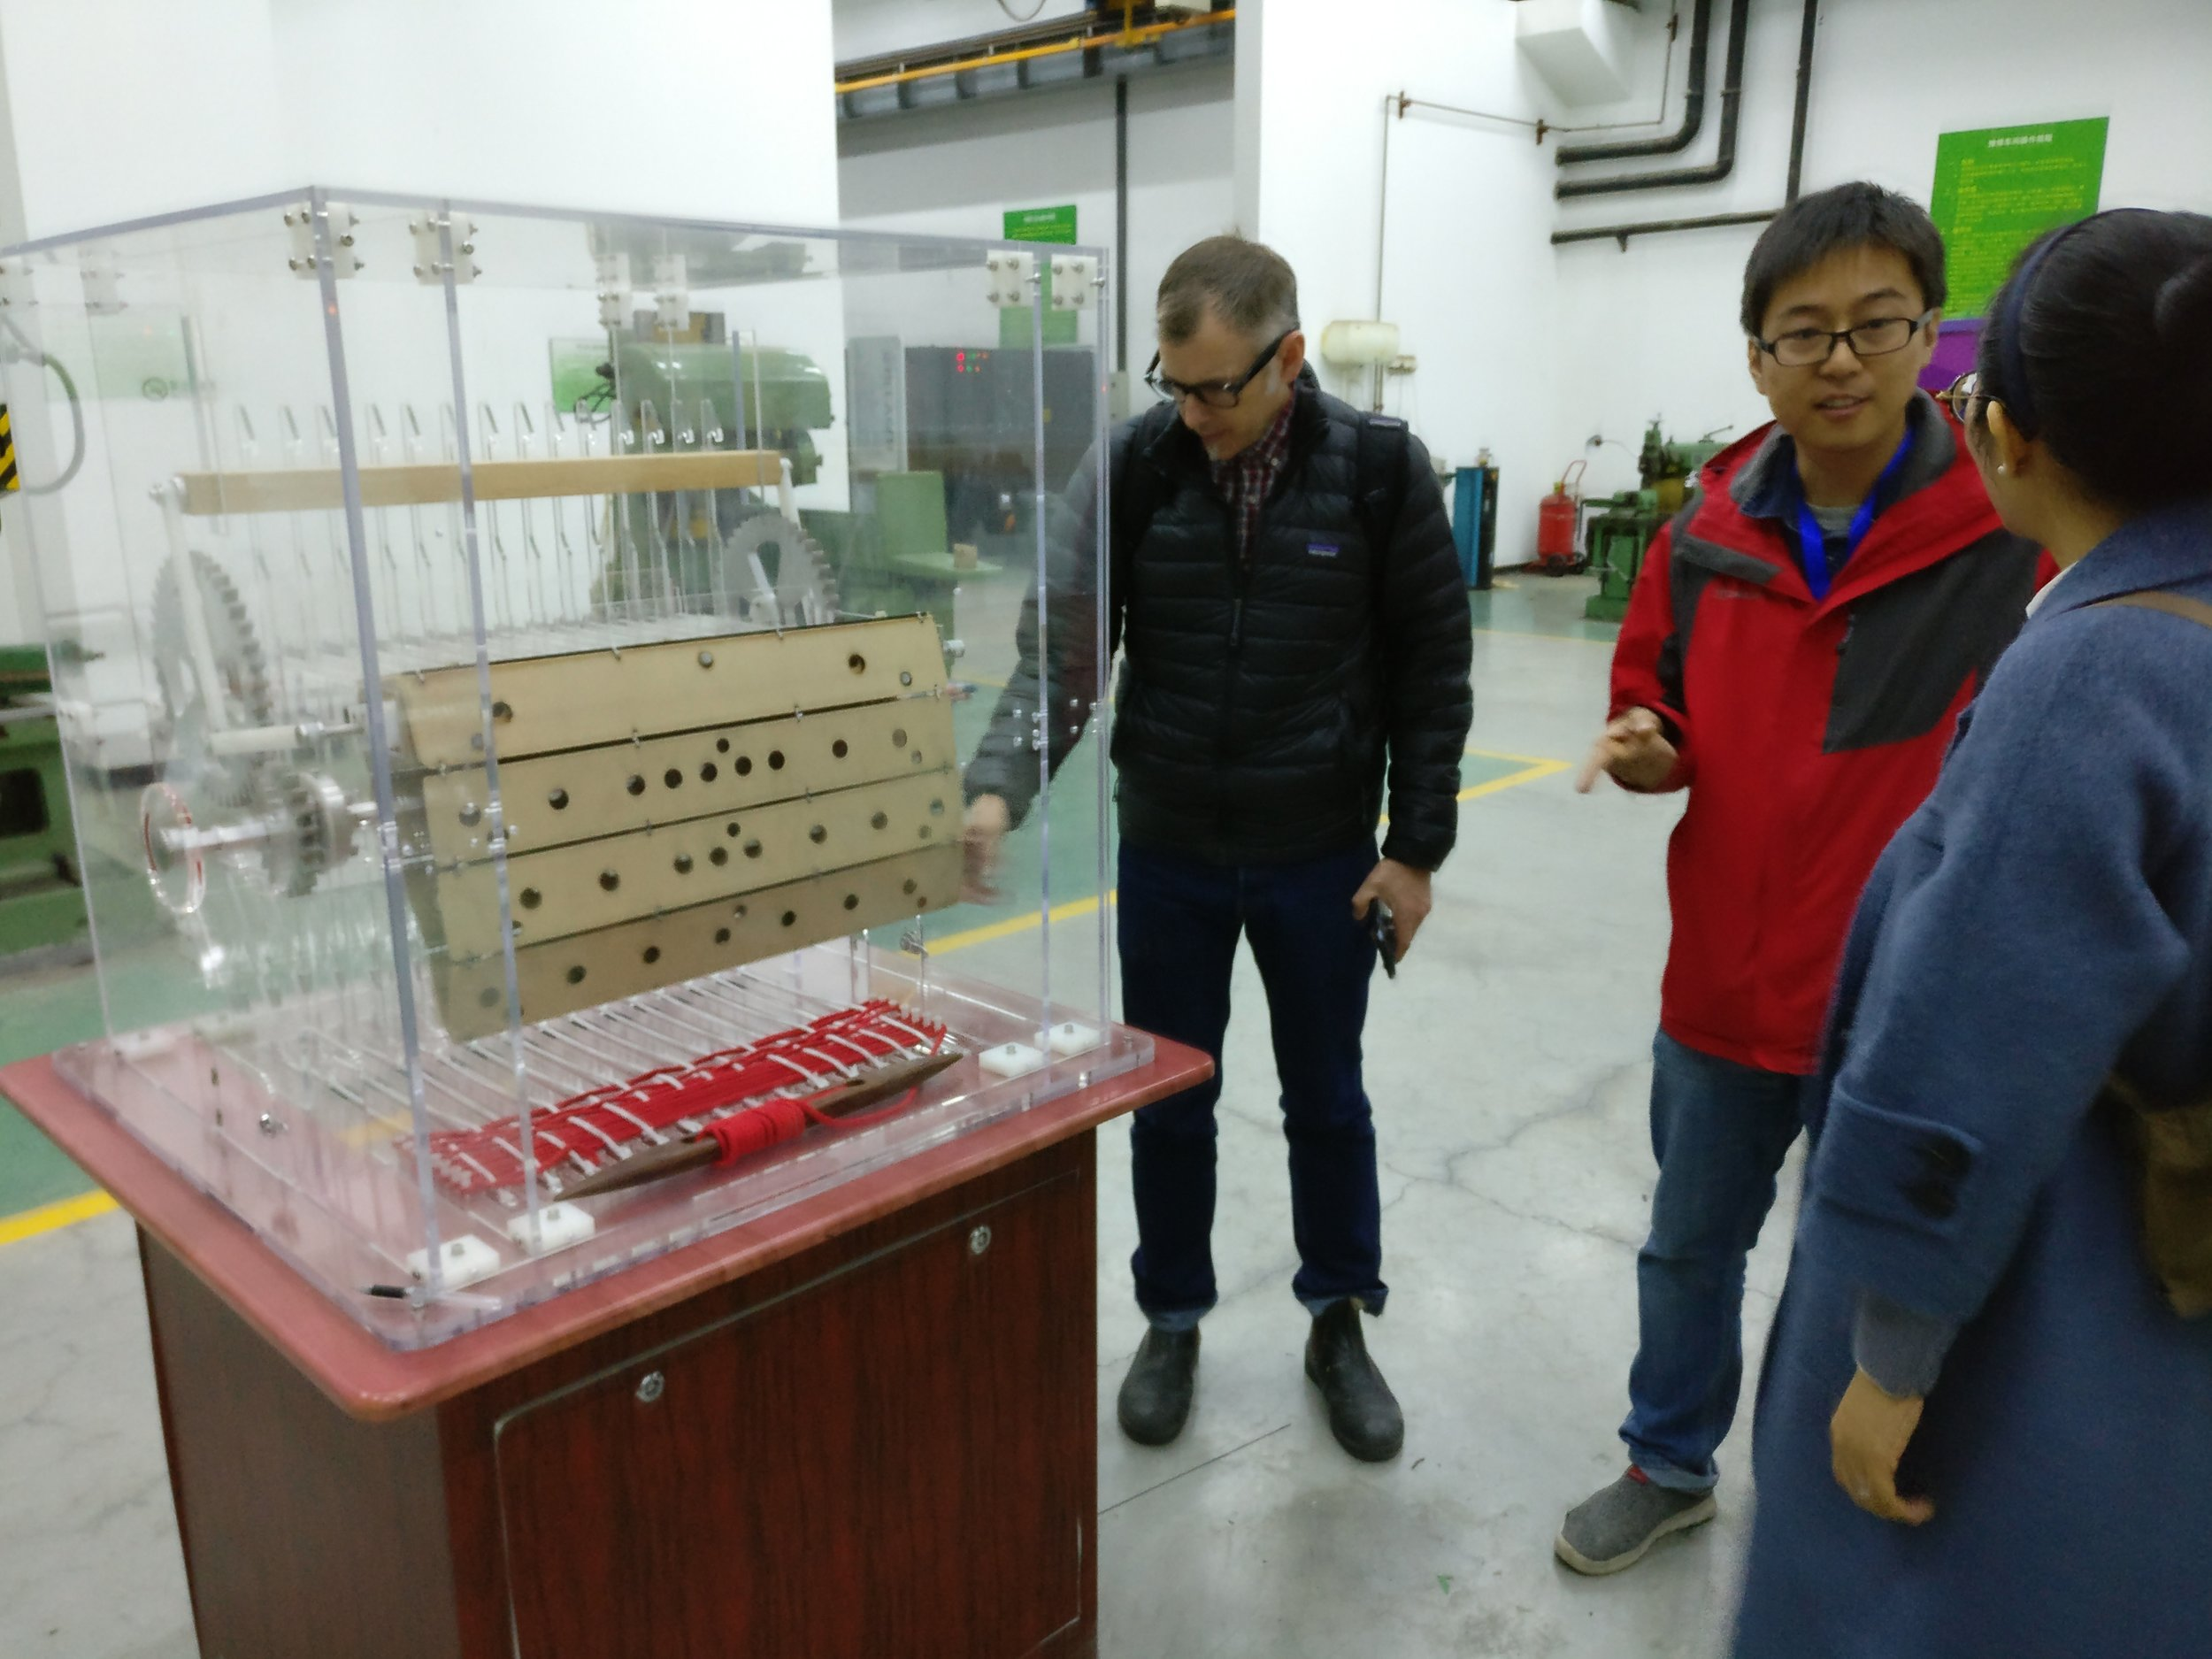 Mr. Eric Dimond from Exploratoriumin is studying a prototype of an interactive knitting machine, created by Mr. Wei Fei at the exhibition production shop at the China Science and Technology Museum.